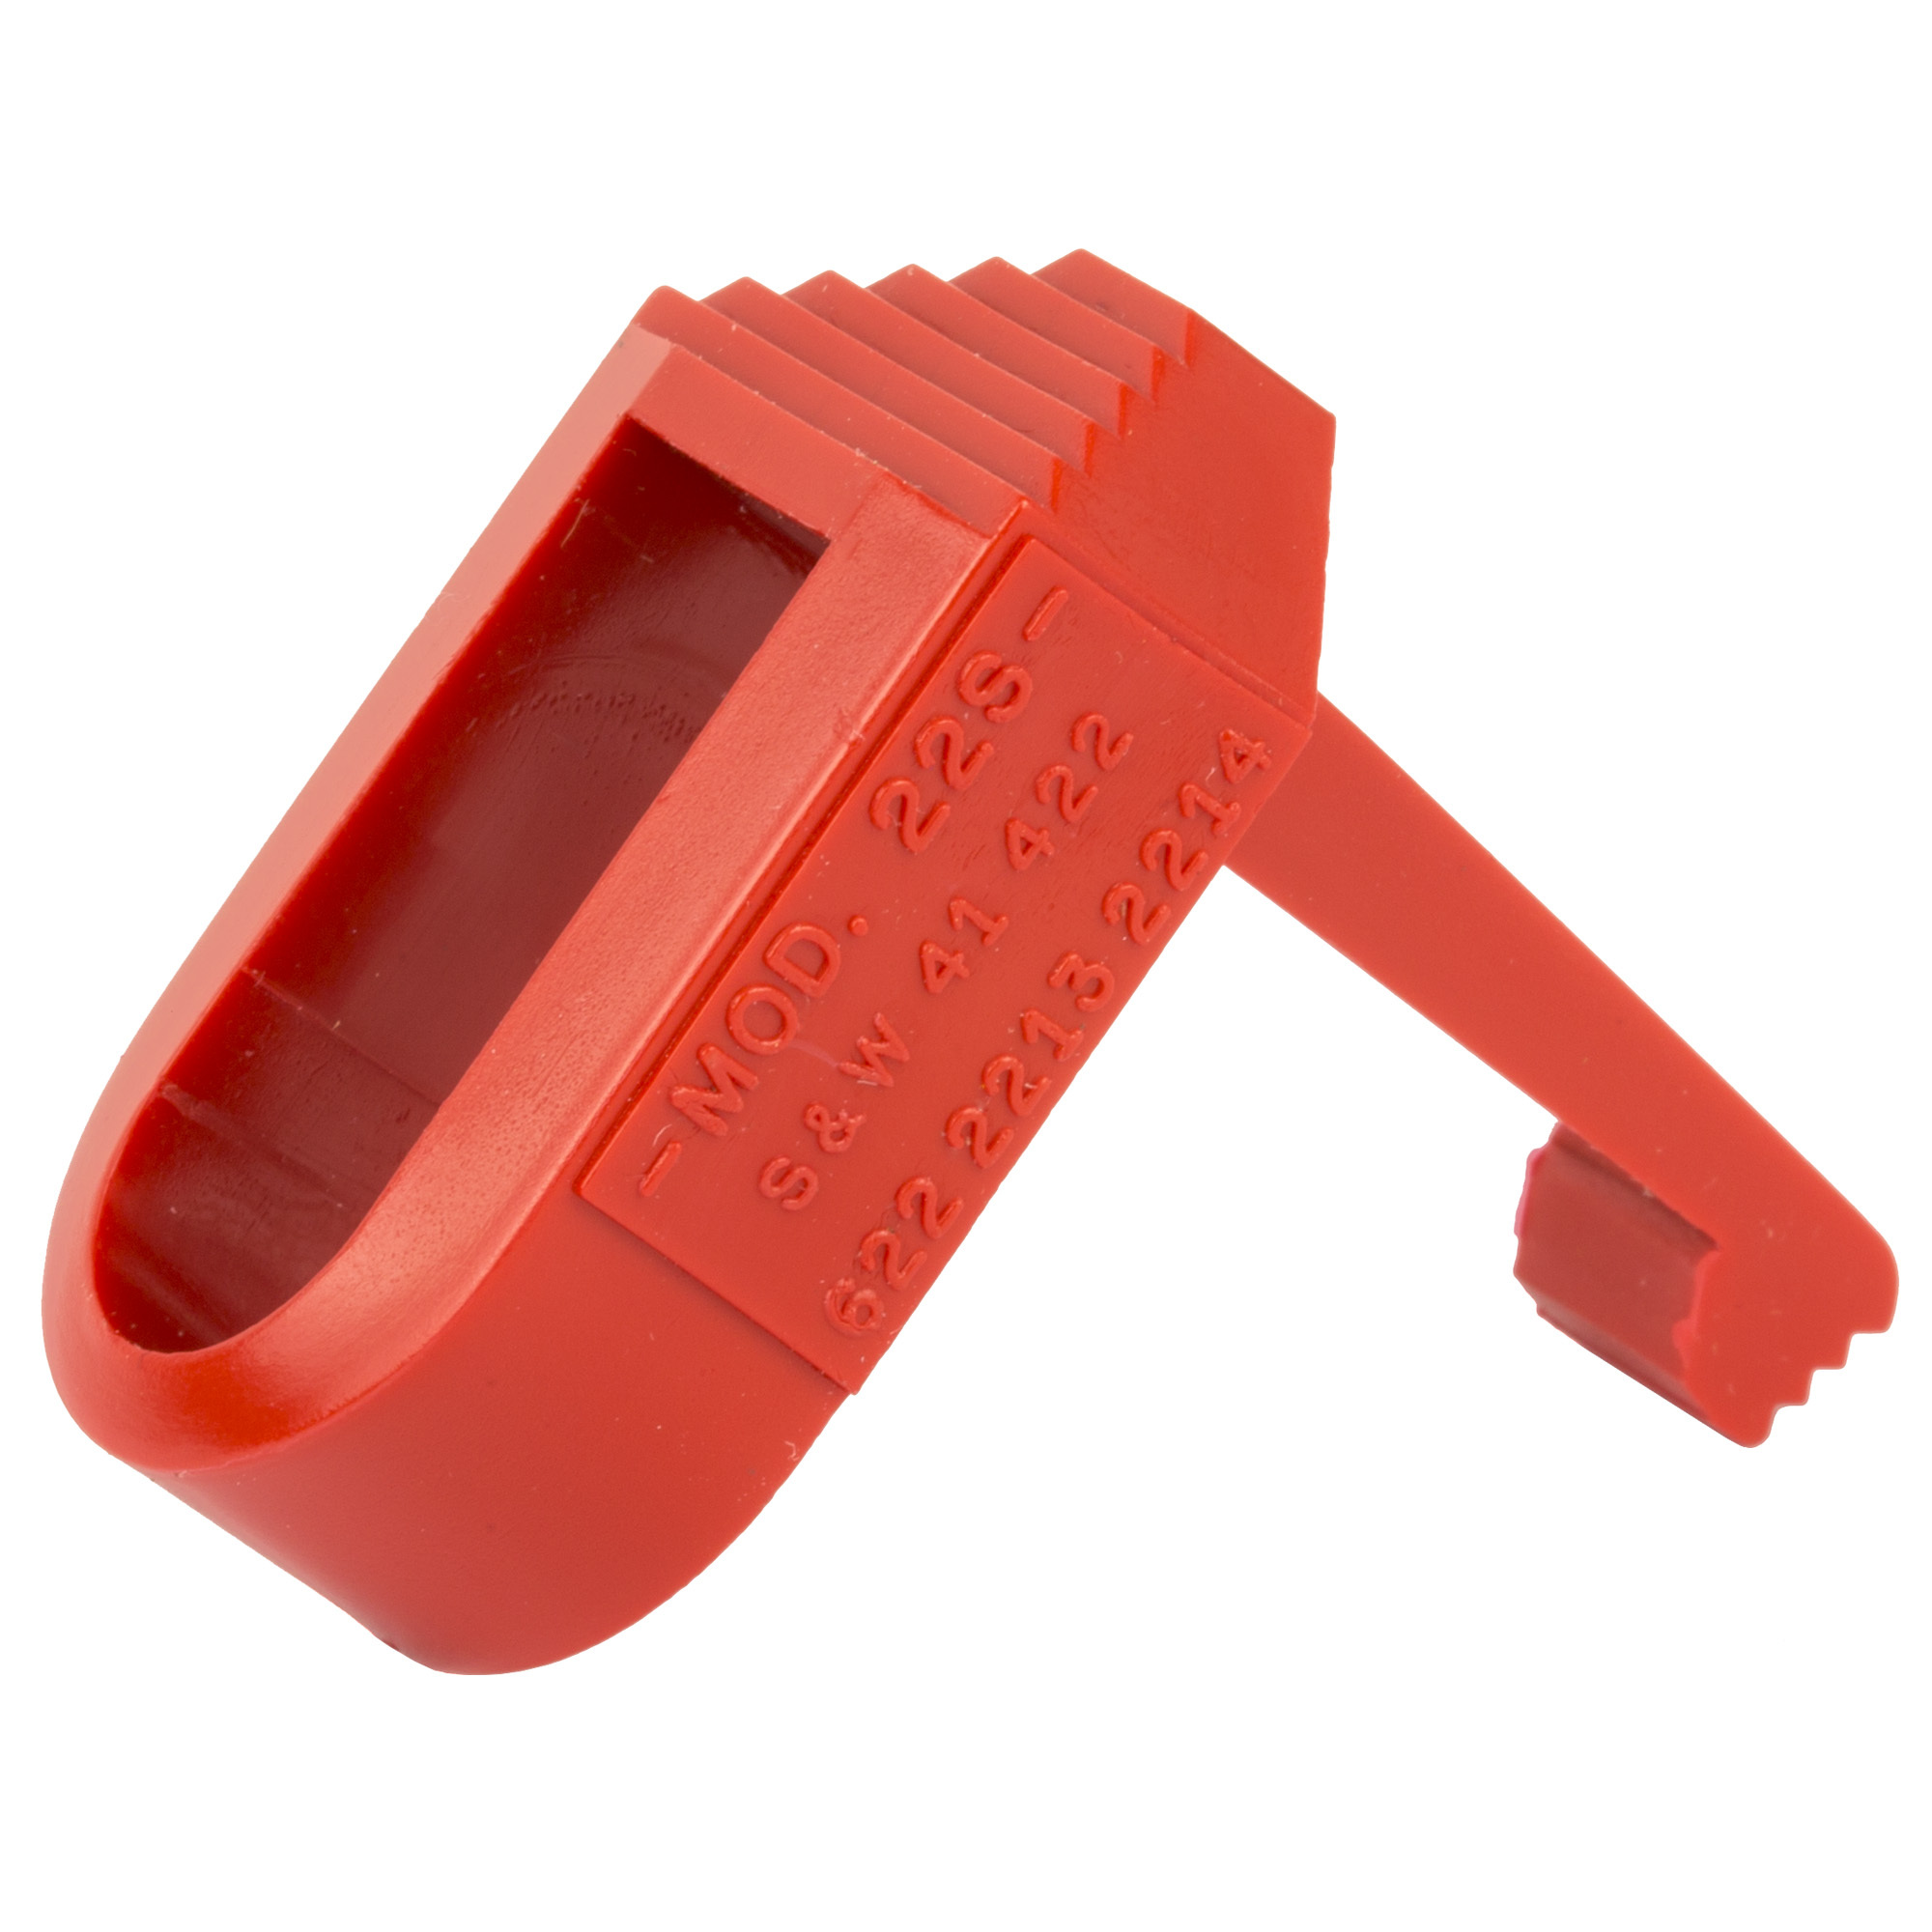 The HKS Mag Loader is capable of loading 15 rounds in 18 seconds. The magazine slips into the loader and is held in by hand. Depress the thumb lever and load. It's that easy!